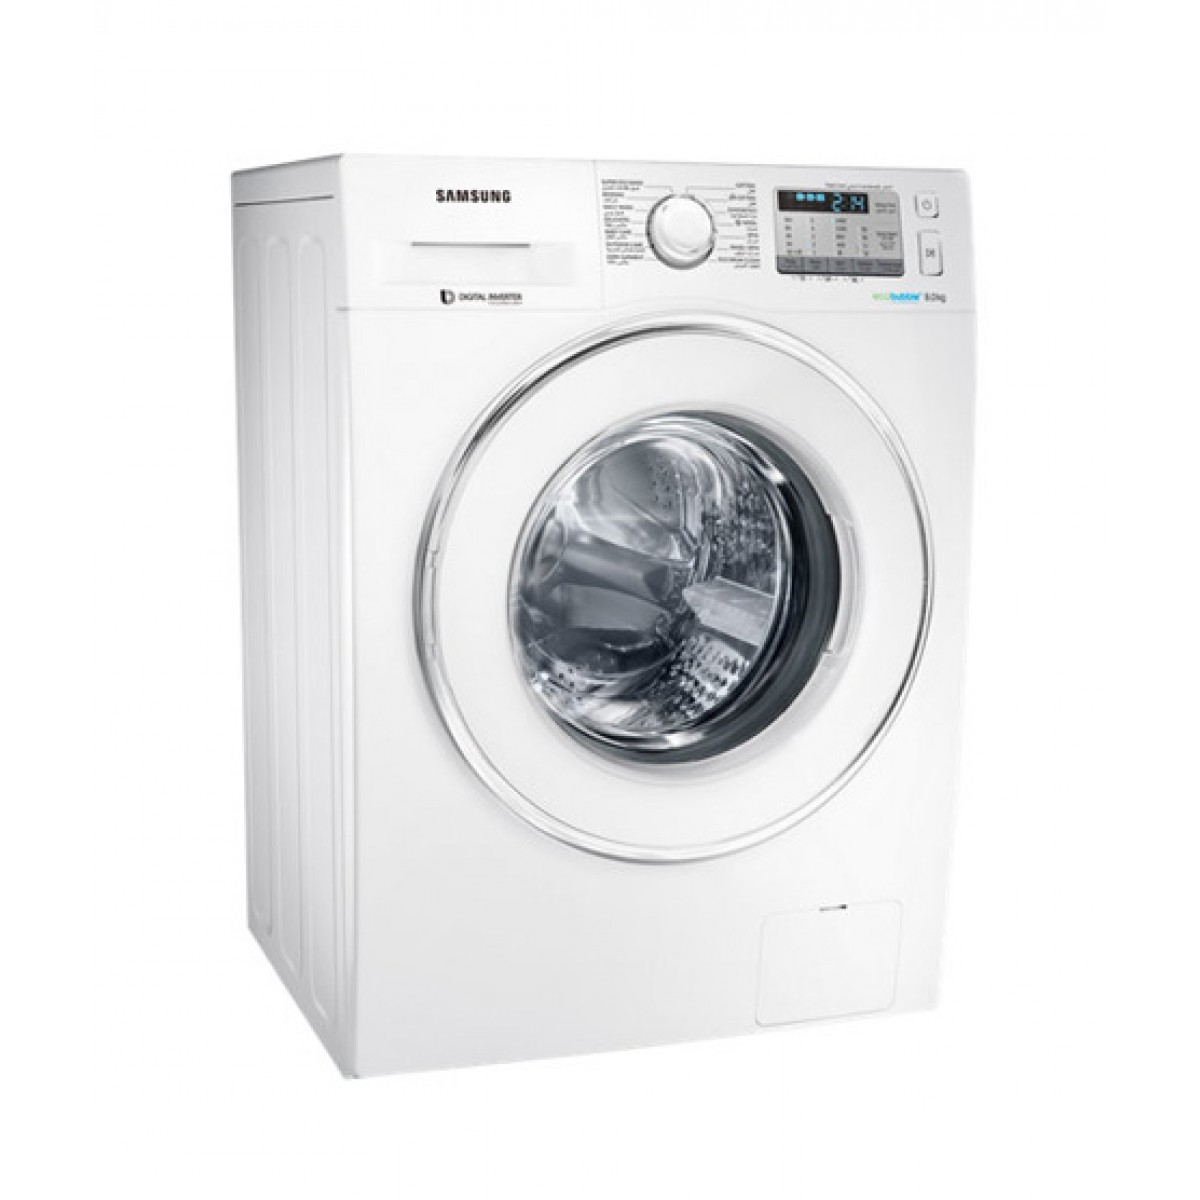 Samsung Ww80j5413 Washing Machine Price In Pakistan Hom